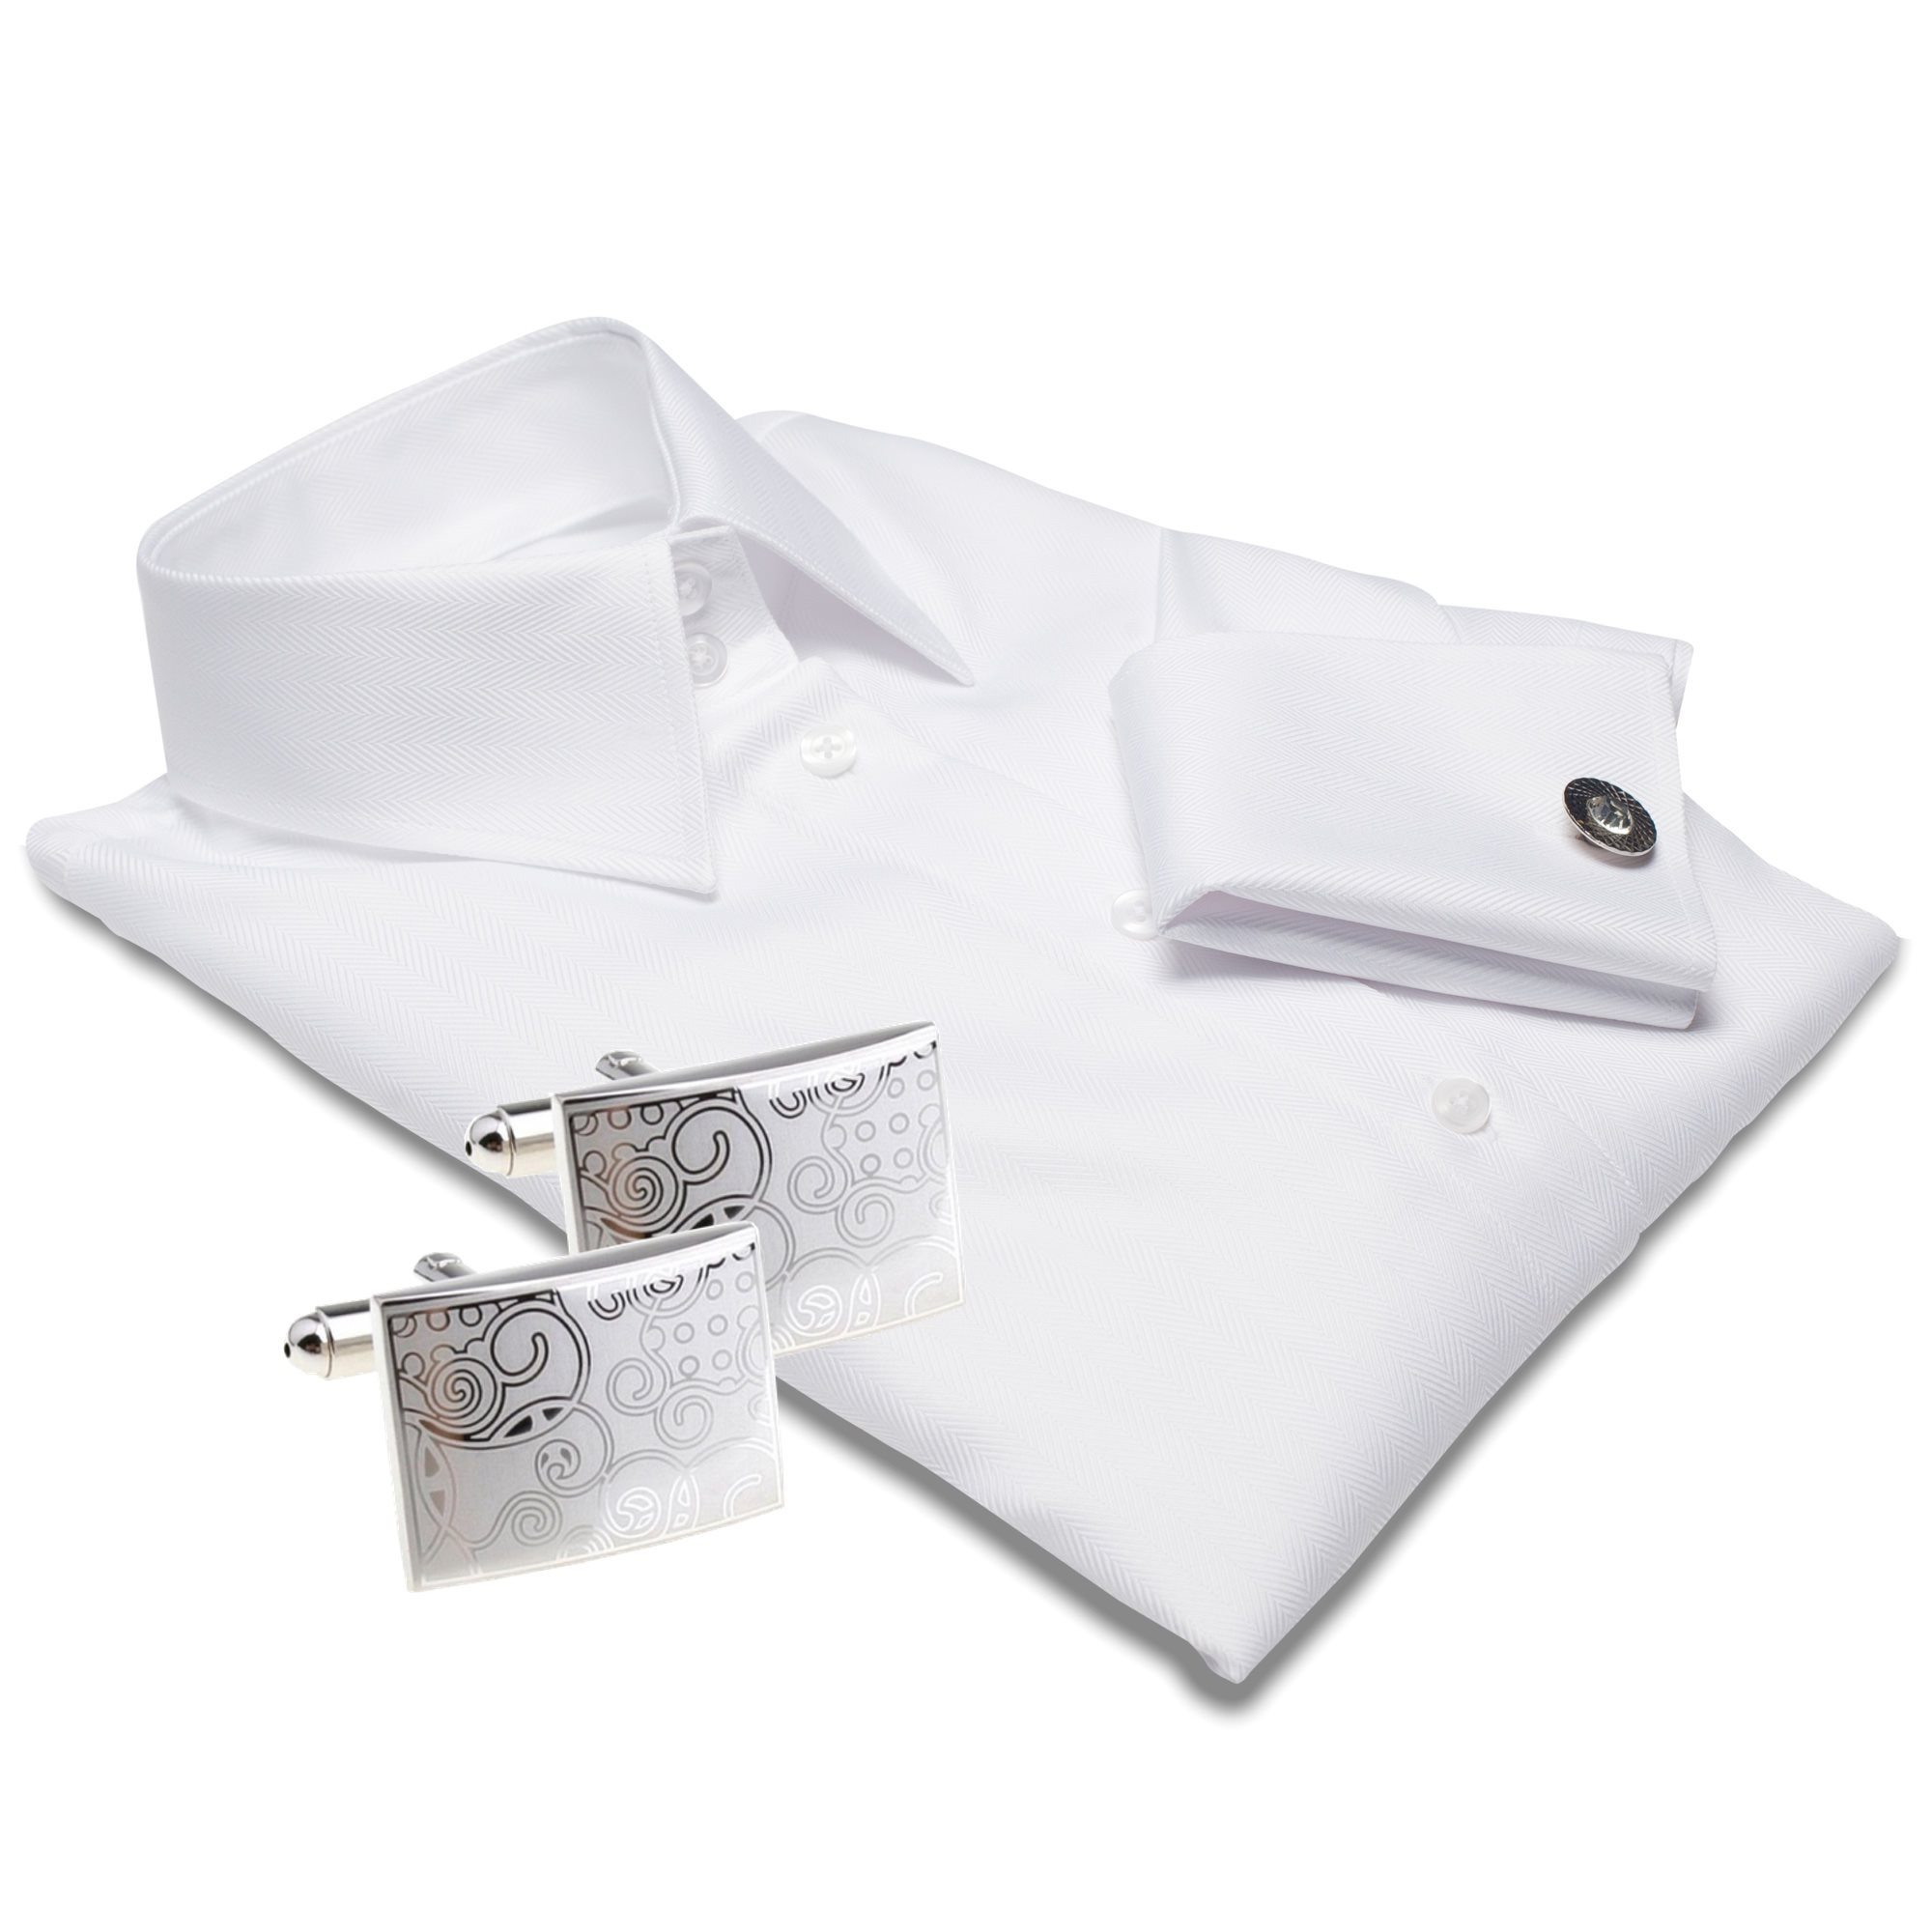 MADRID white dress shirt + CUFFLINKS